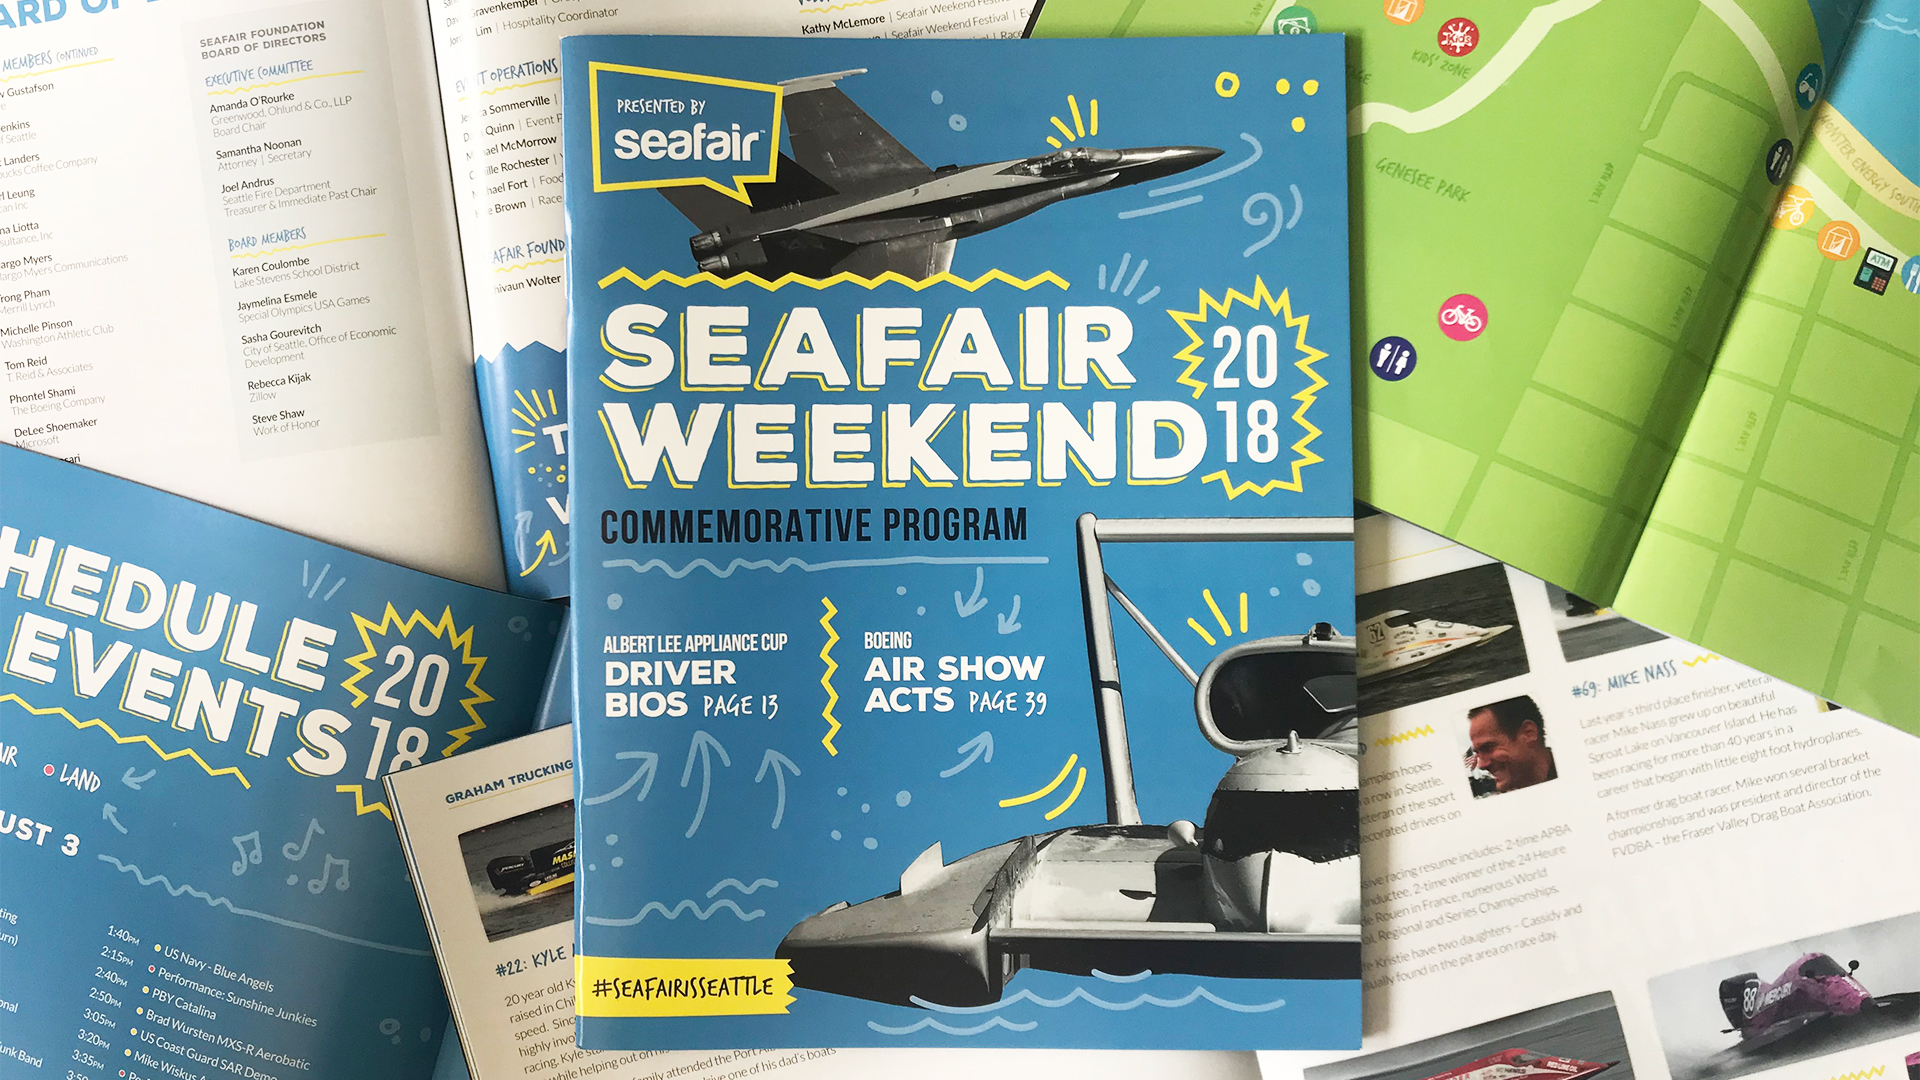 Seafair Weekend Commemorative Program